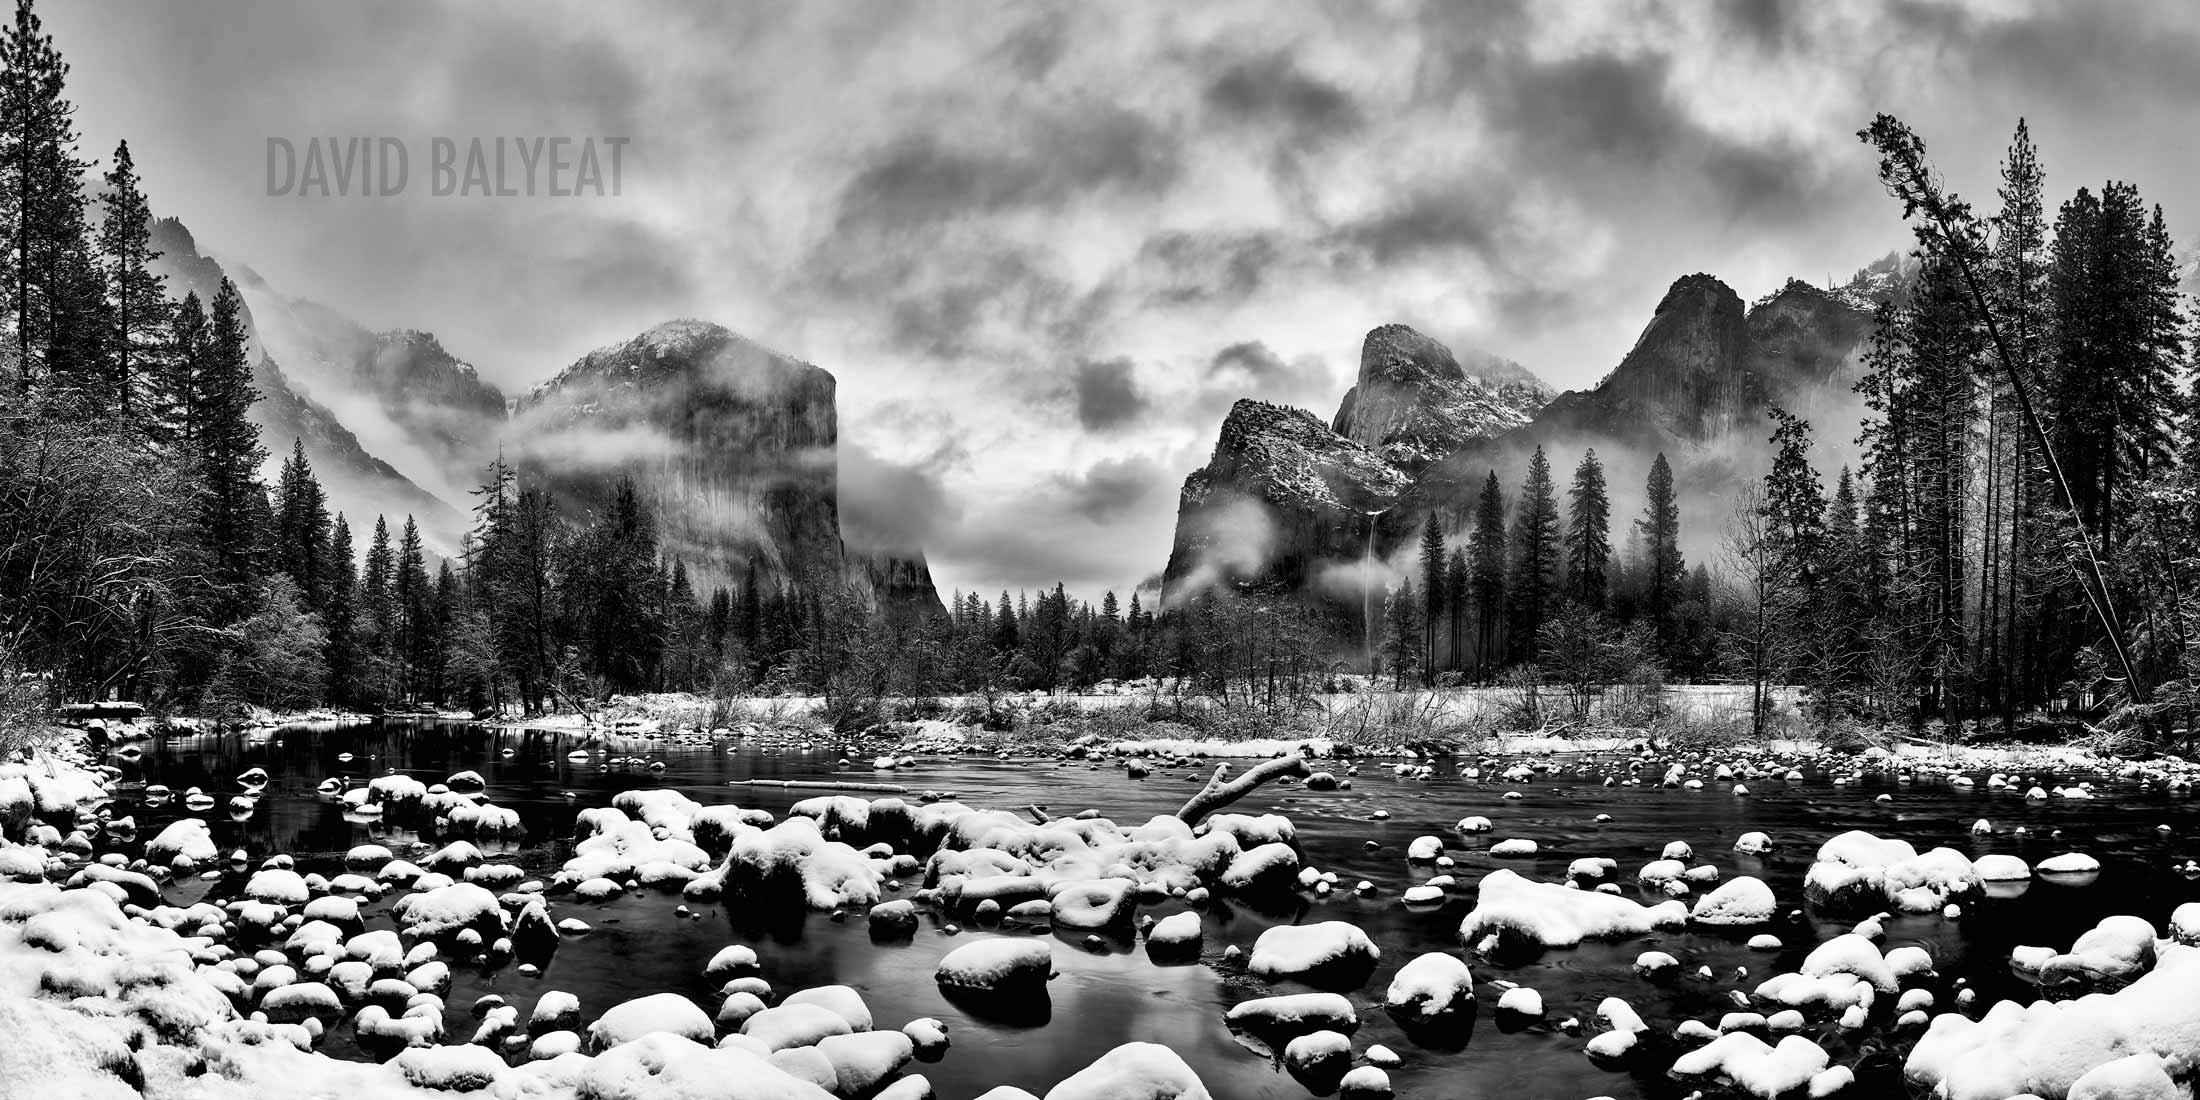 Yosemite National Park Valley View black and white snow winter wonderland high-definition professional landscape photography